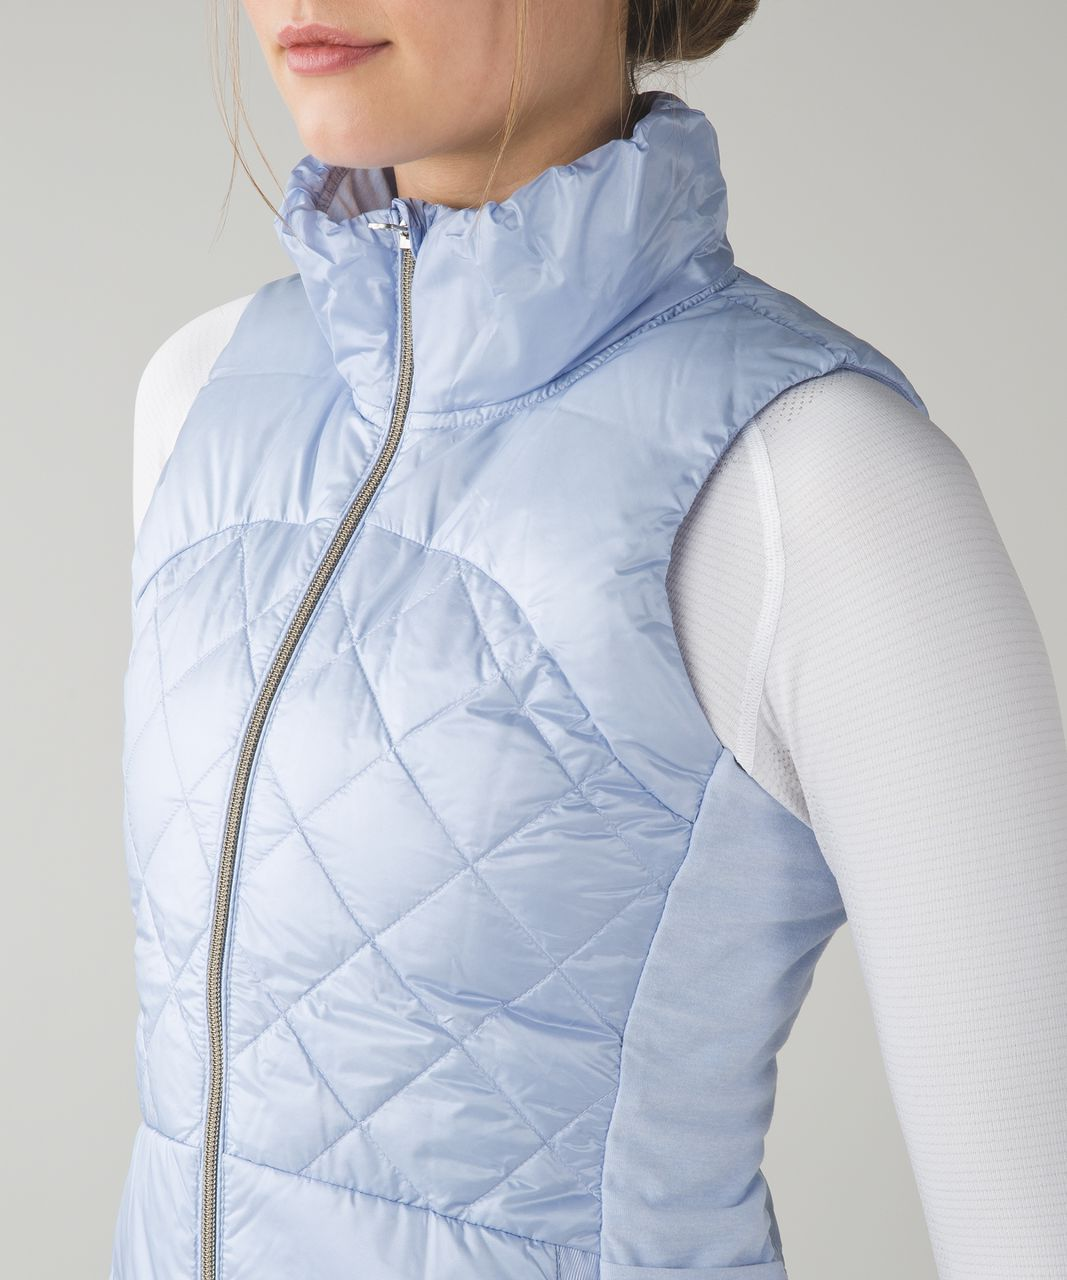 Lululemon Down For A Run Vest - Cool Breeze